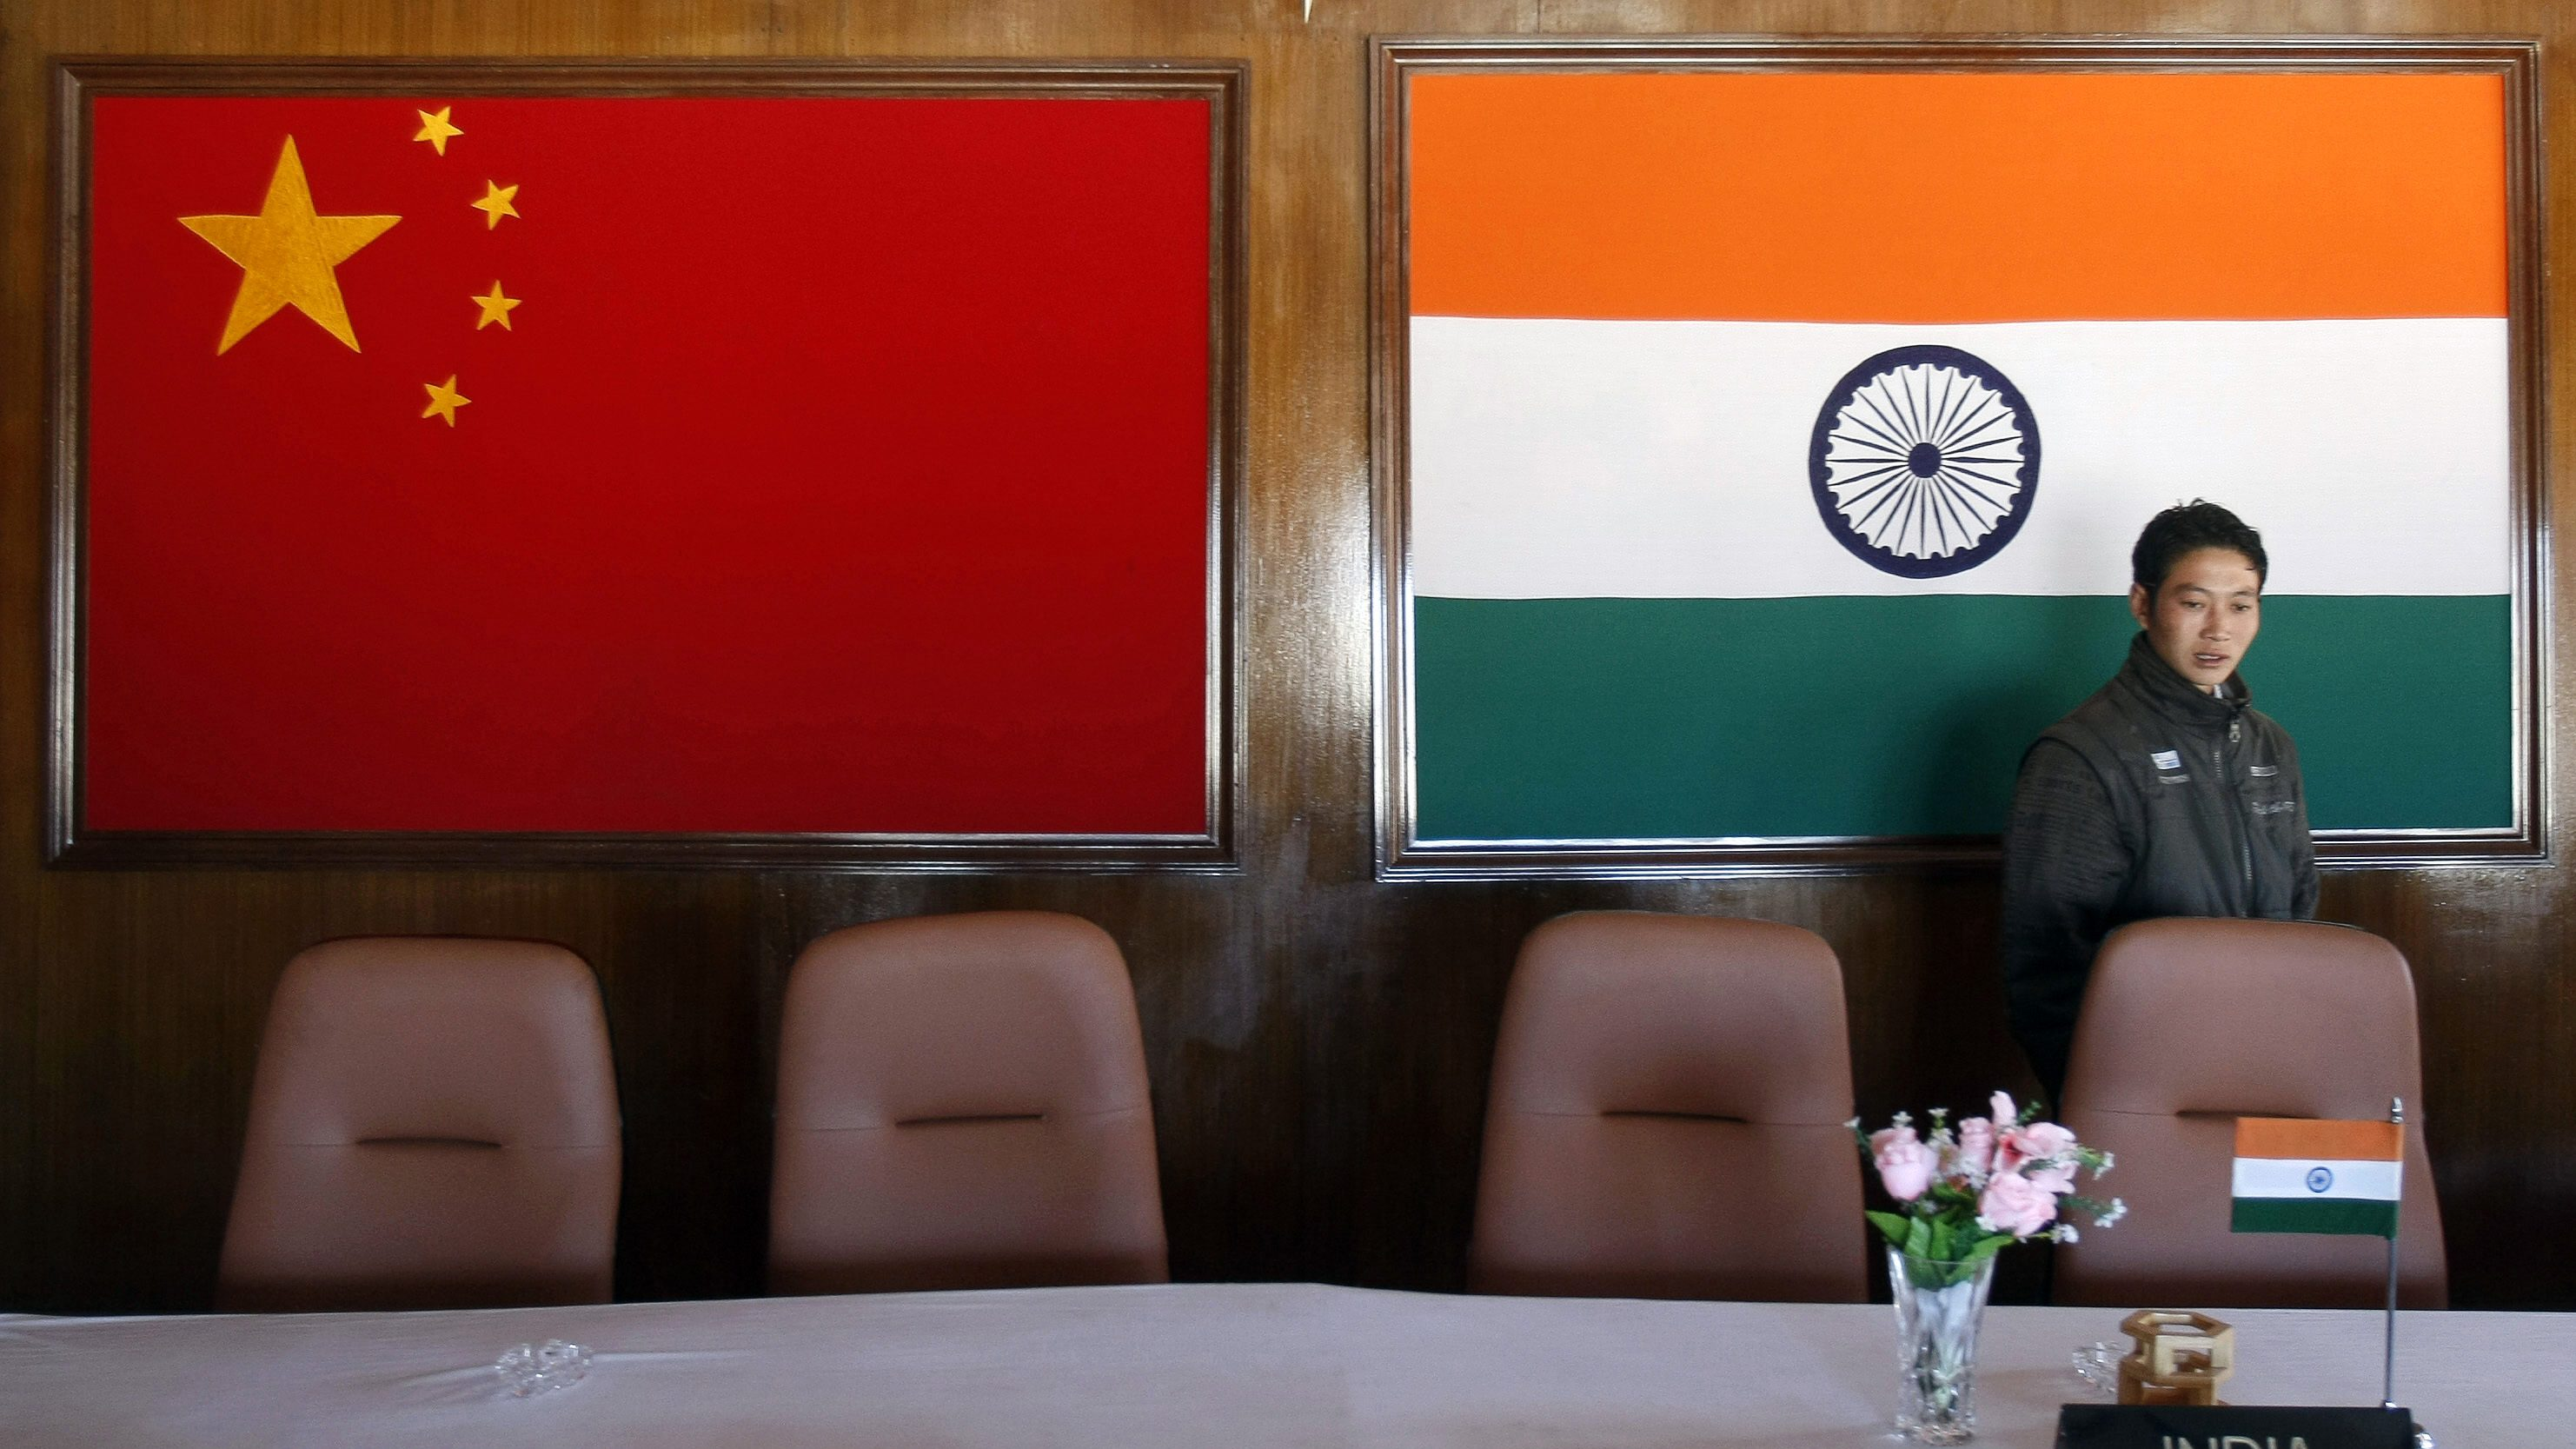 A man walks inside a conference room used for meetings between military commanders of China and India, at the Indian side of the Indo-China border at Bumla, in the northeastern Indian state of Arunachal Pradesh, November 11, 2009. With ties between the two Asian giants strained by a flare-up over their disputed boundary, India is fortifying parts of its northeast, building new roads and bridges, deploying tens of thousands more soldiers and boosting air defences. Picture taken November 11, 2009.    REUTERS/Adnan Abidi (INDIA POLITICS MILITARY IMAGES OF THE DAY) - GM1E5BD1AZ701